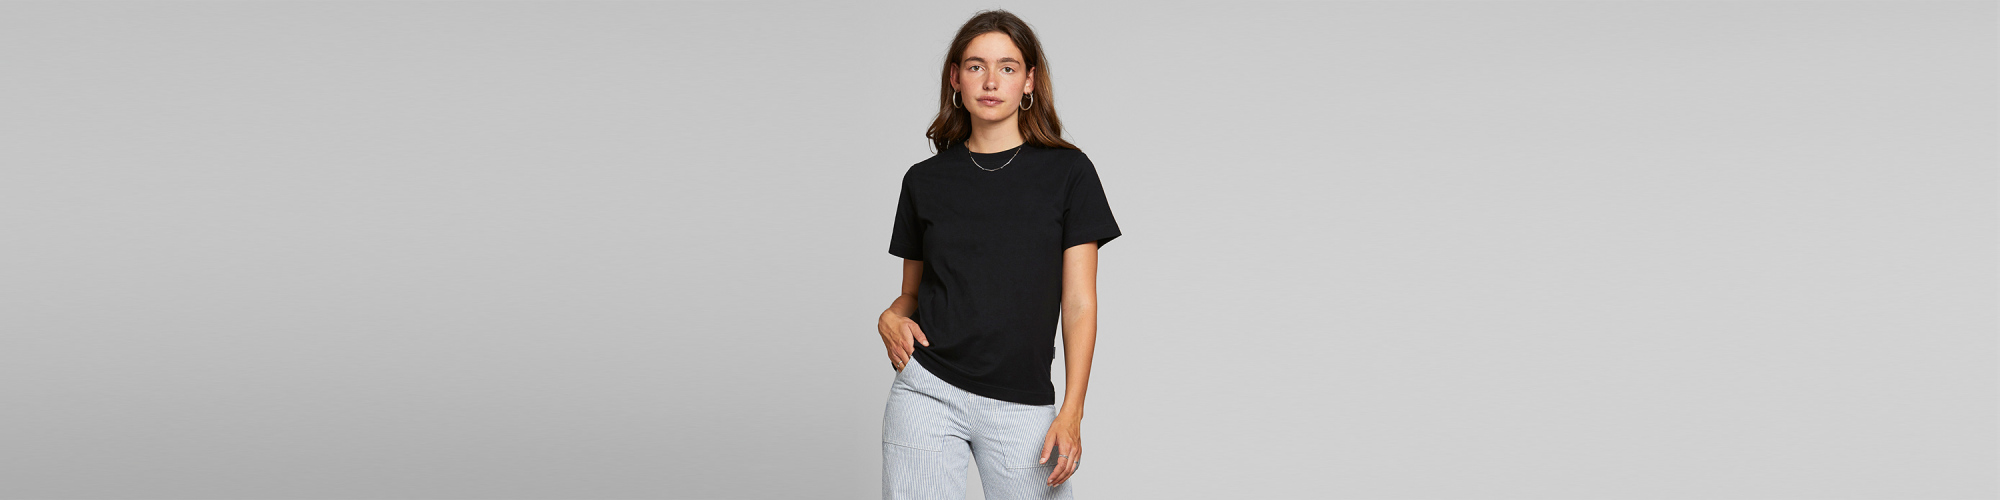 Women's Solid T-shirts